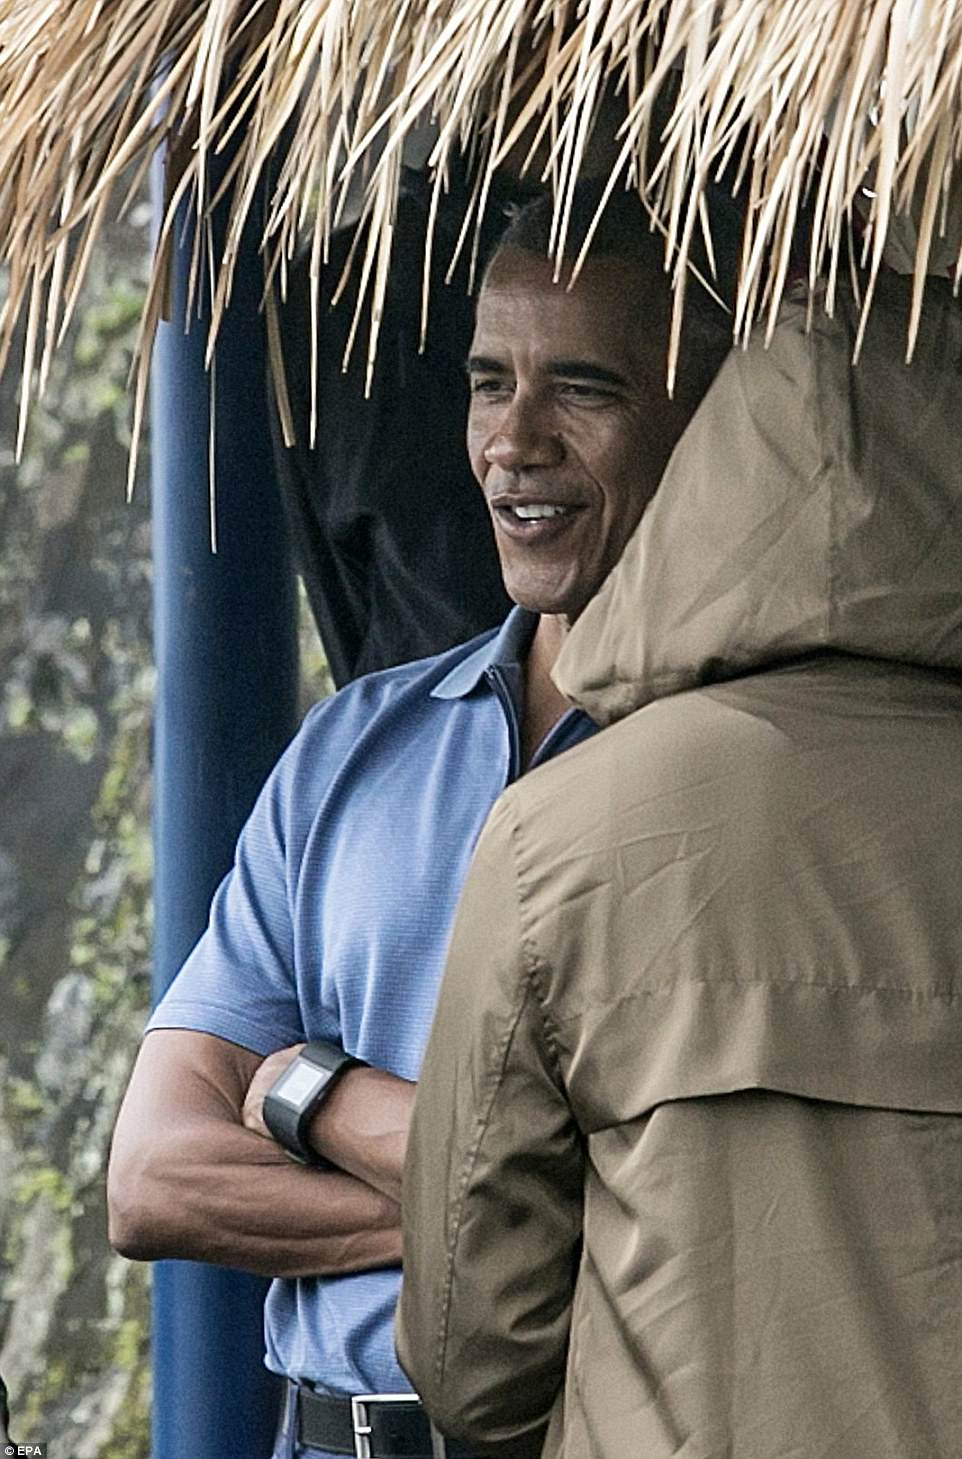 Barack - who used to live in Indonesia in the 1970s - kept things pretty casual in a blue polo top as he looked out over the fields